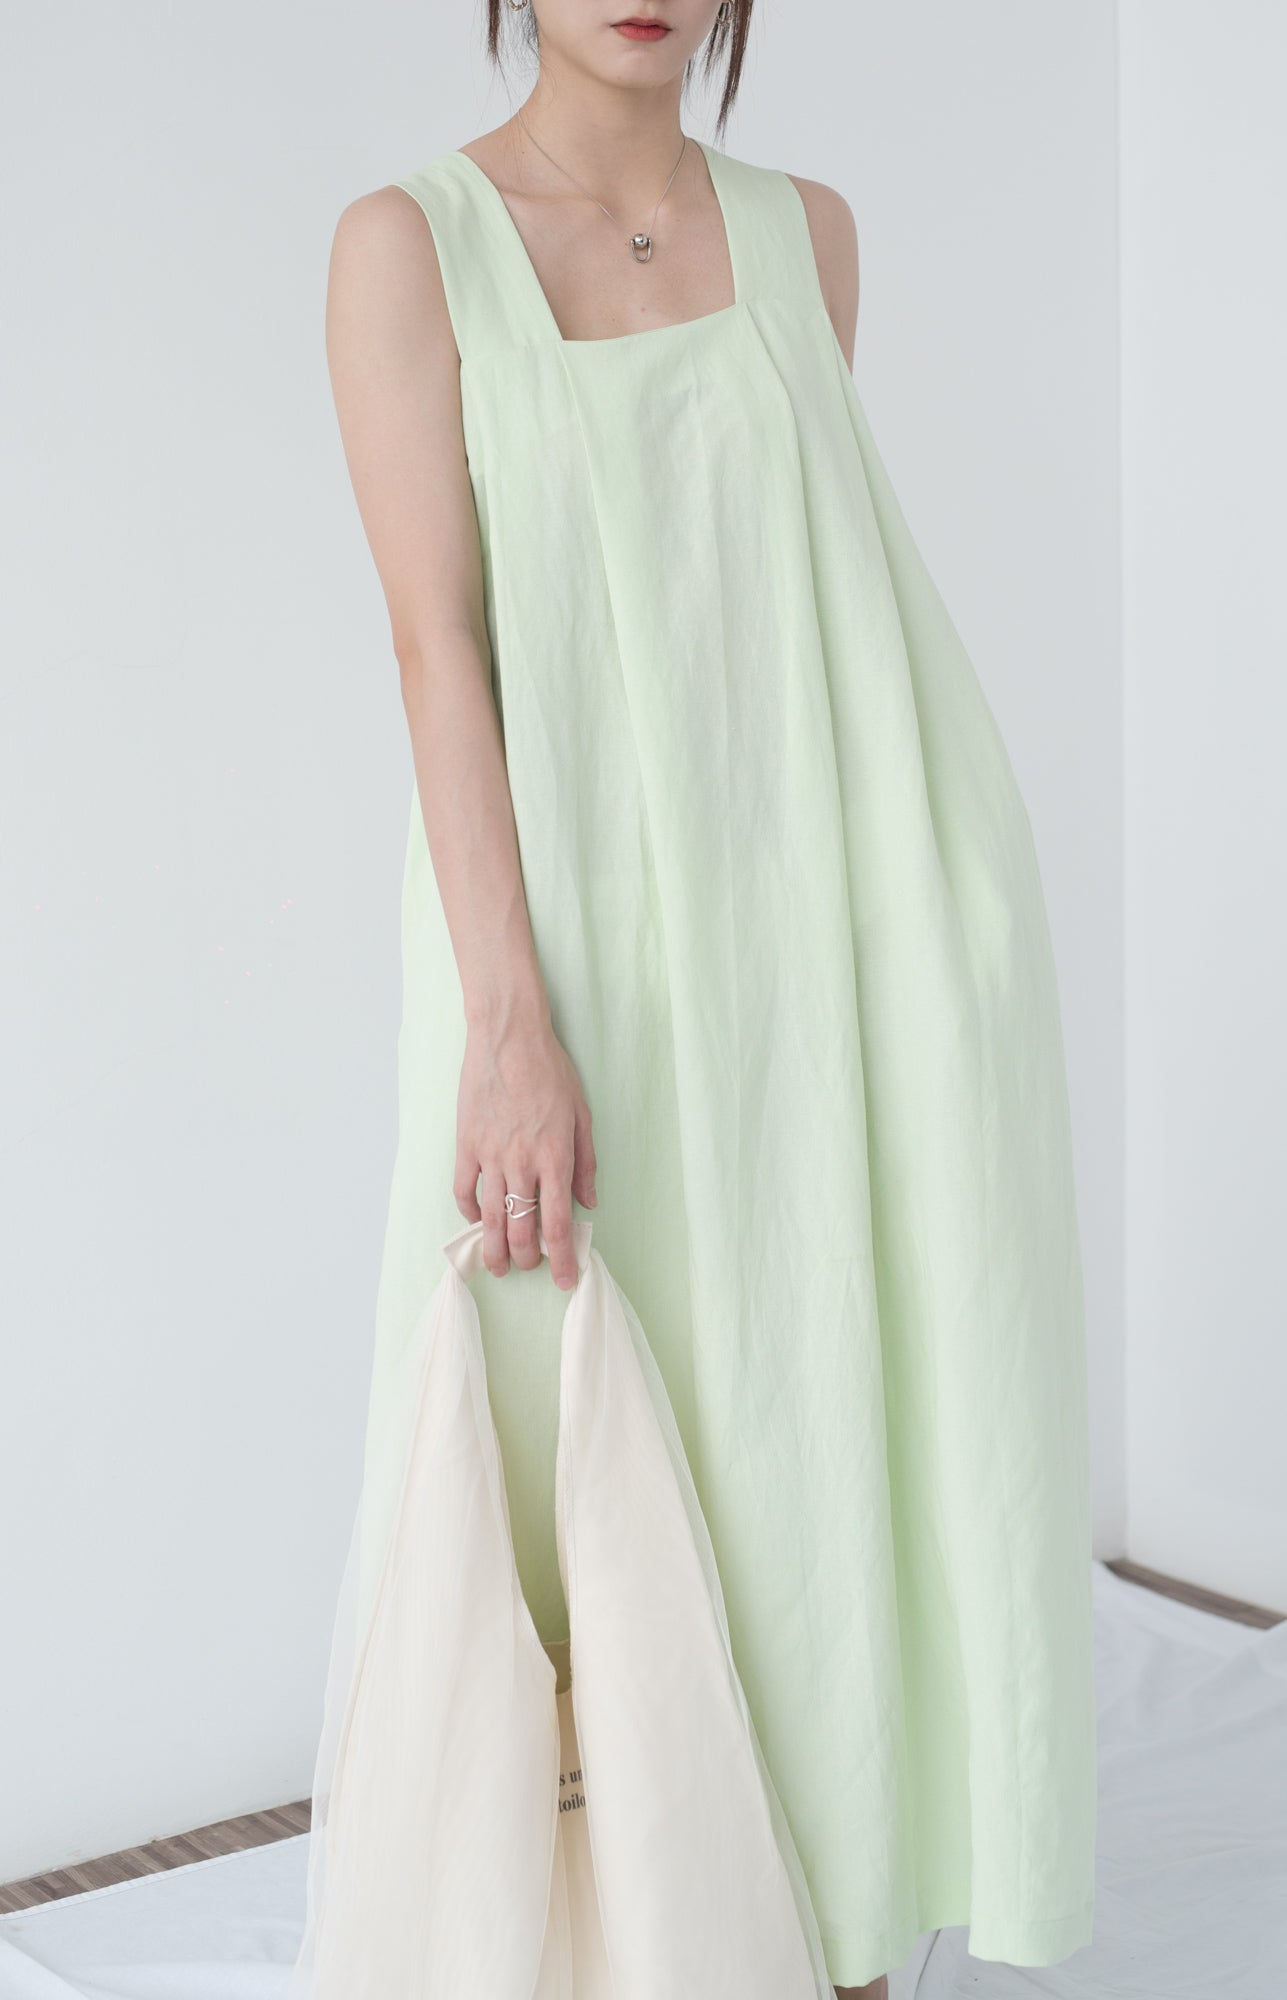 Castor sleeveless long dress in mint green